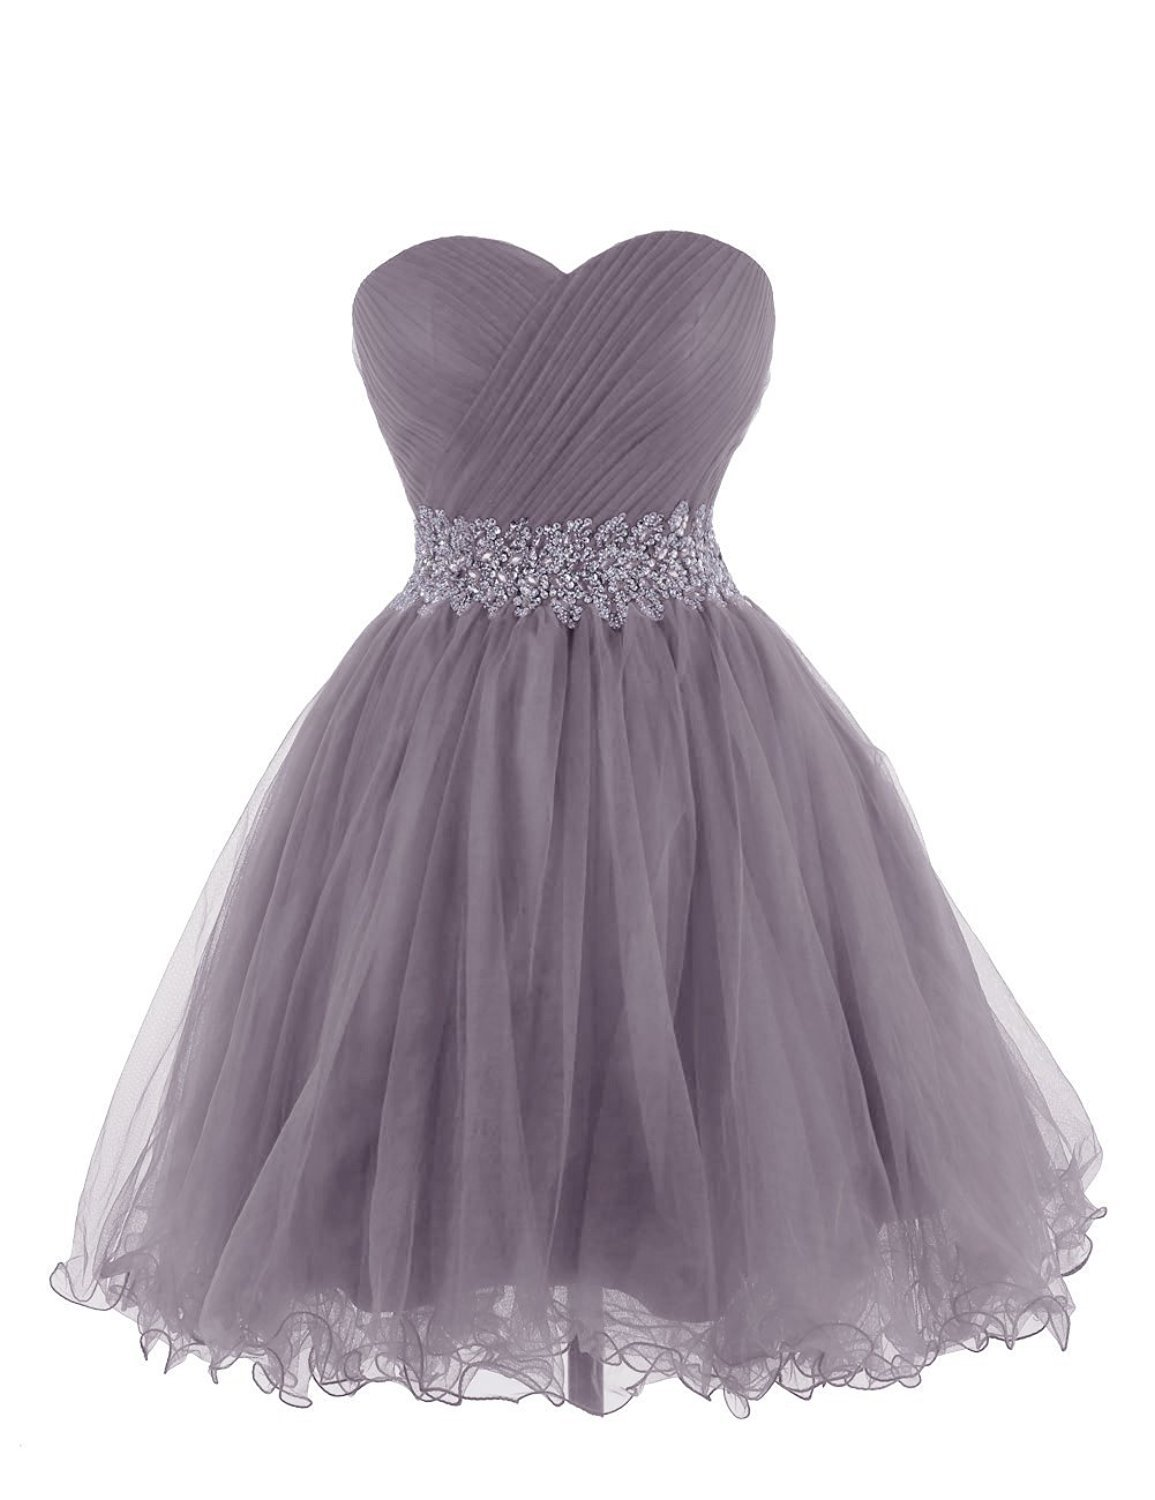 Cdress Crystal Beads Sweetheart Short Tulle Prom Dresses Homecoming Party Gowns US 8